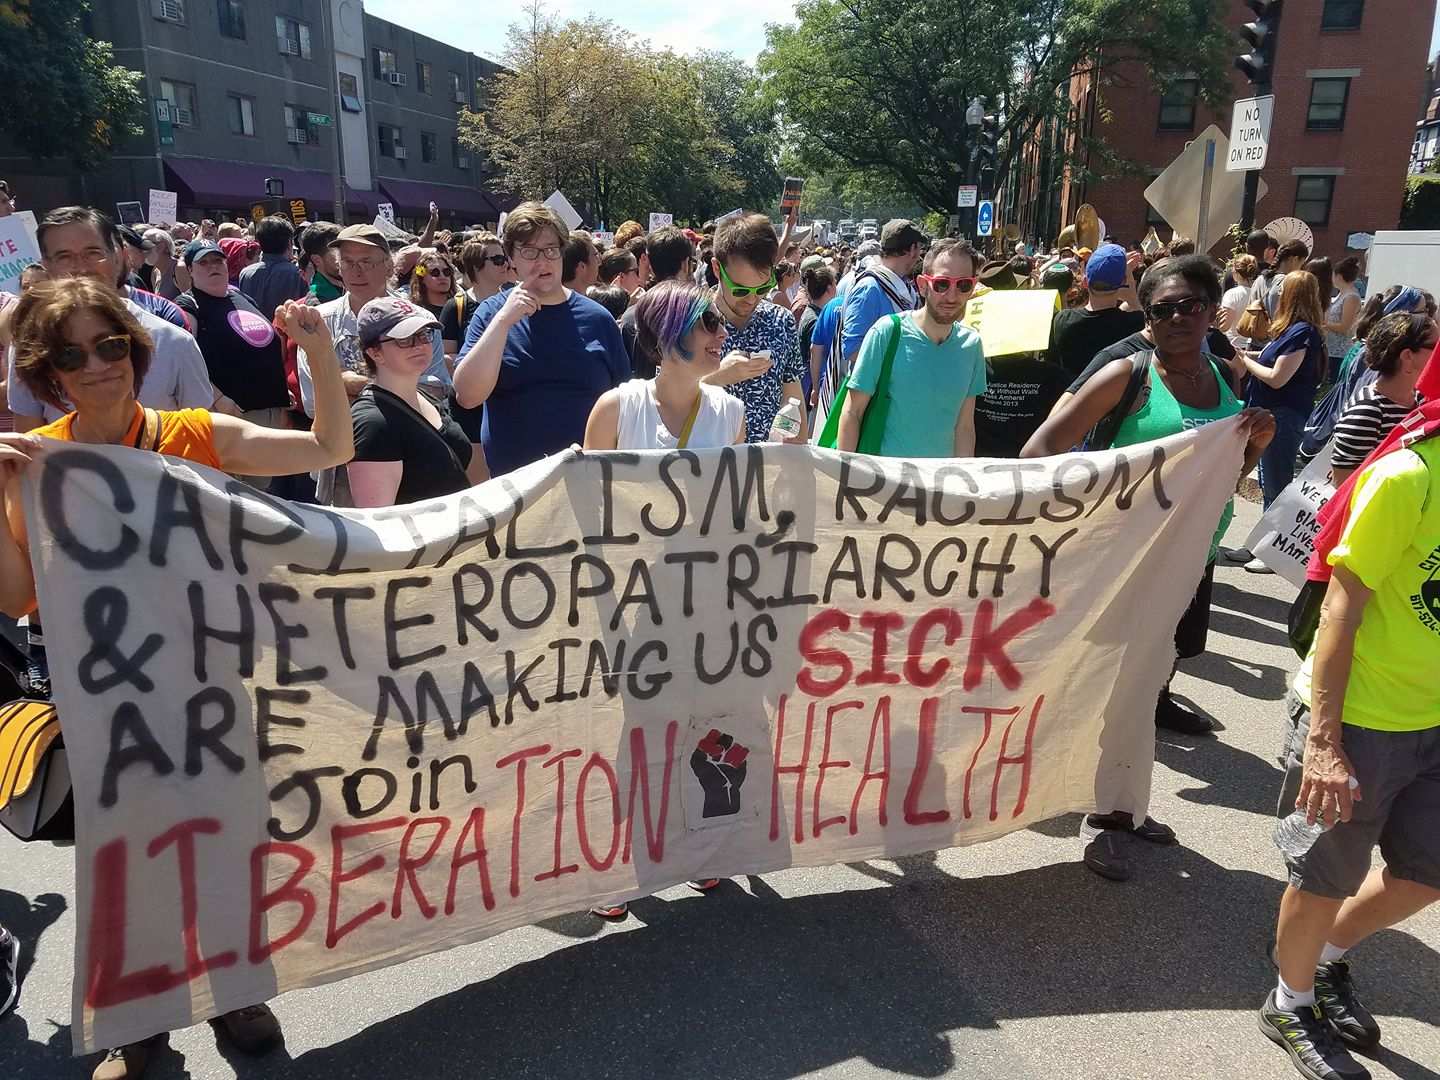 """Members of Boston Liberation Health hold a banner that reads, """"Capitalism, racism, and heteropatriachy are making us sick. Join Liberation Health."""" The group are advocates of social justice, human liberation, and mental health."""